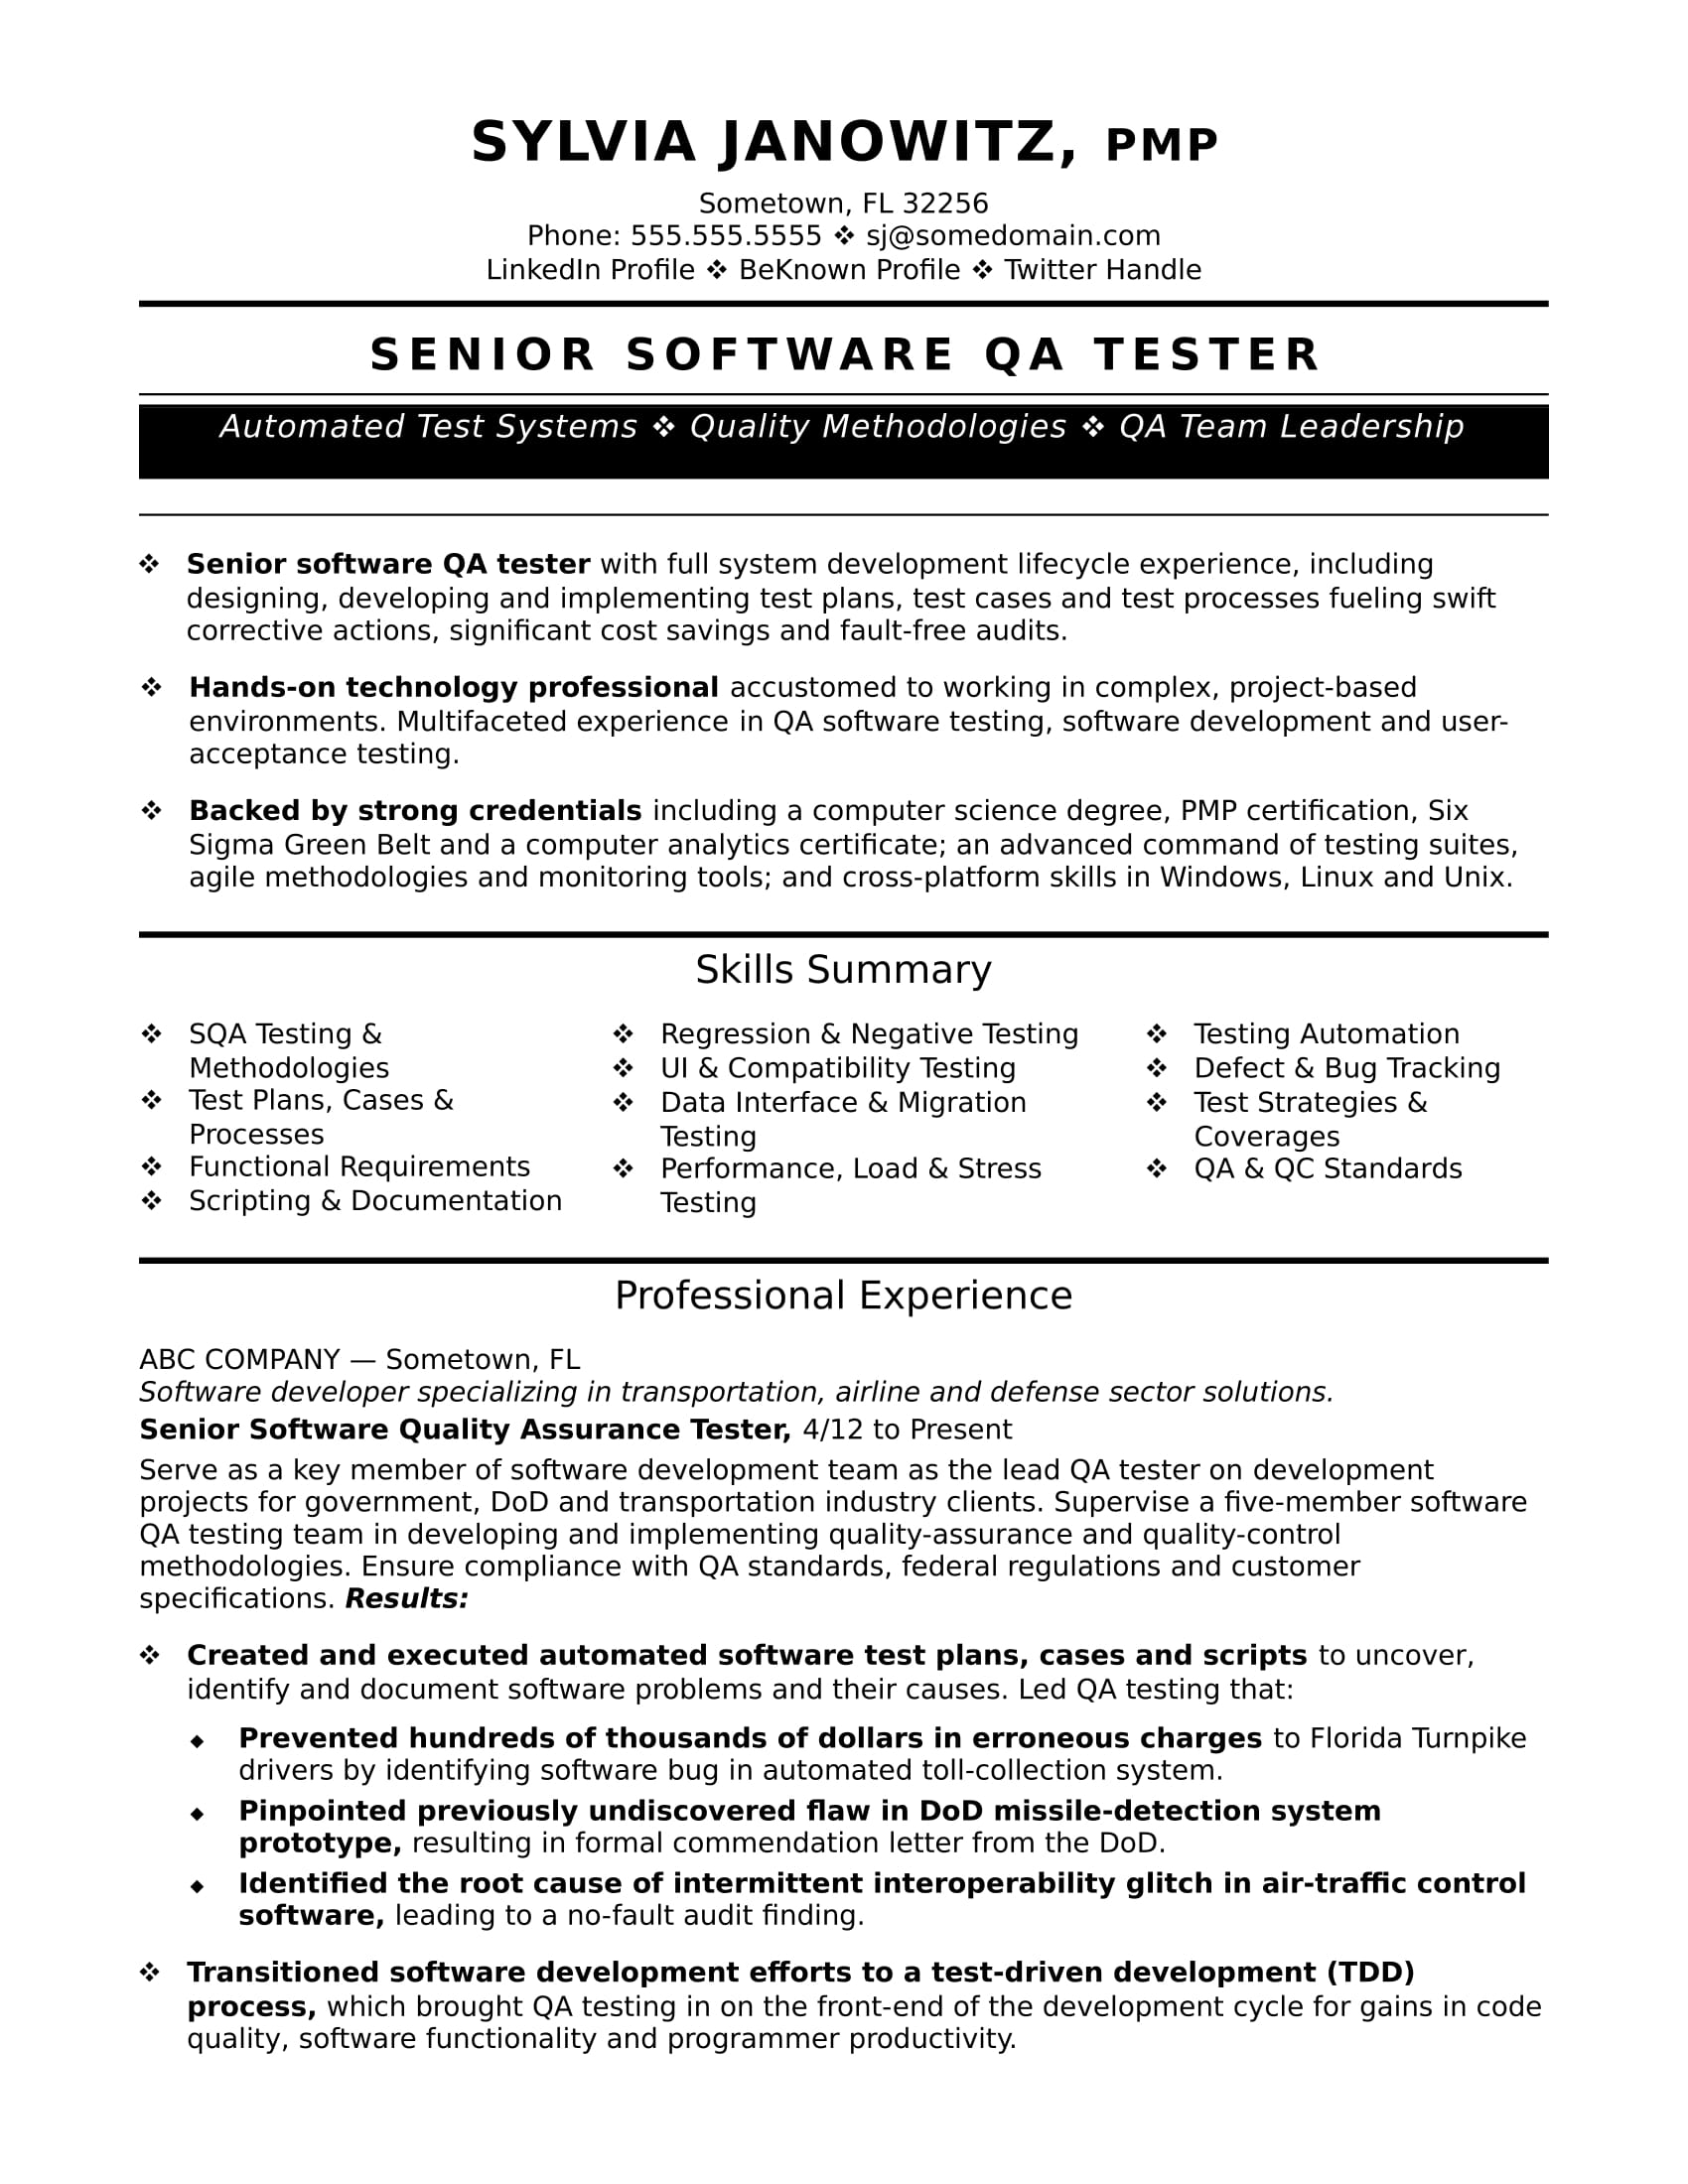 Captivating Experienced QA Software Tester Resume Sample Pertaining To Qa Resume